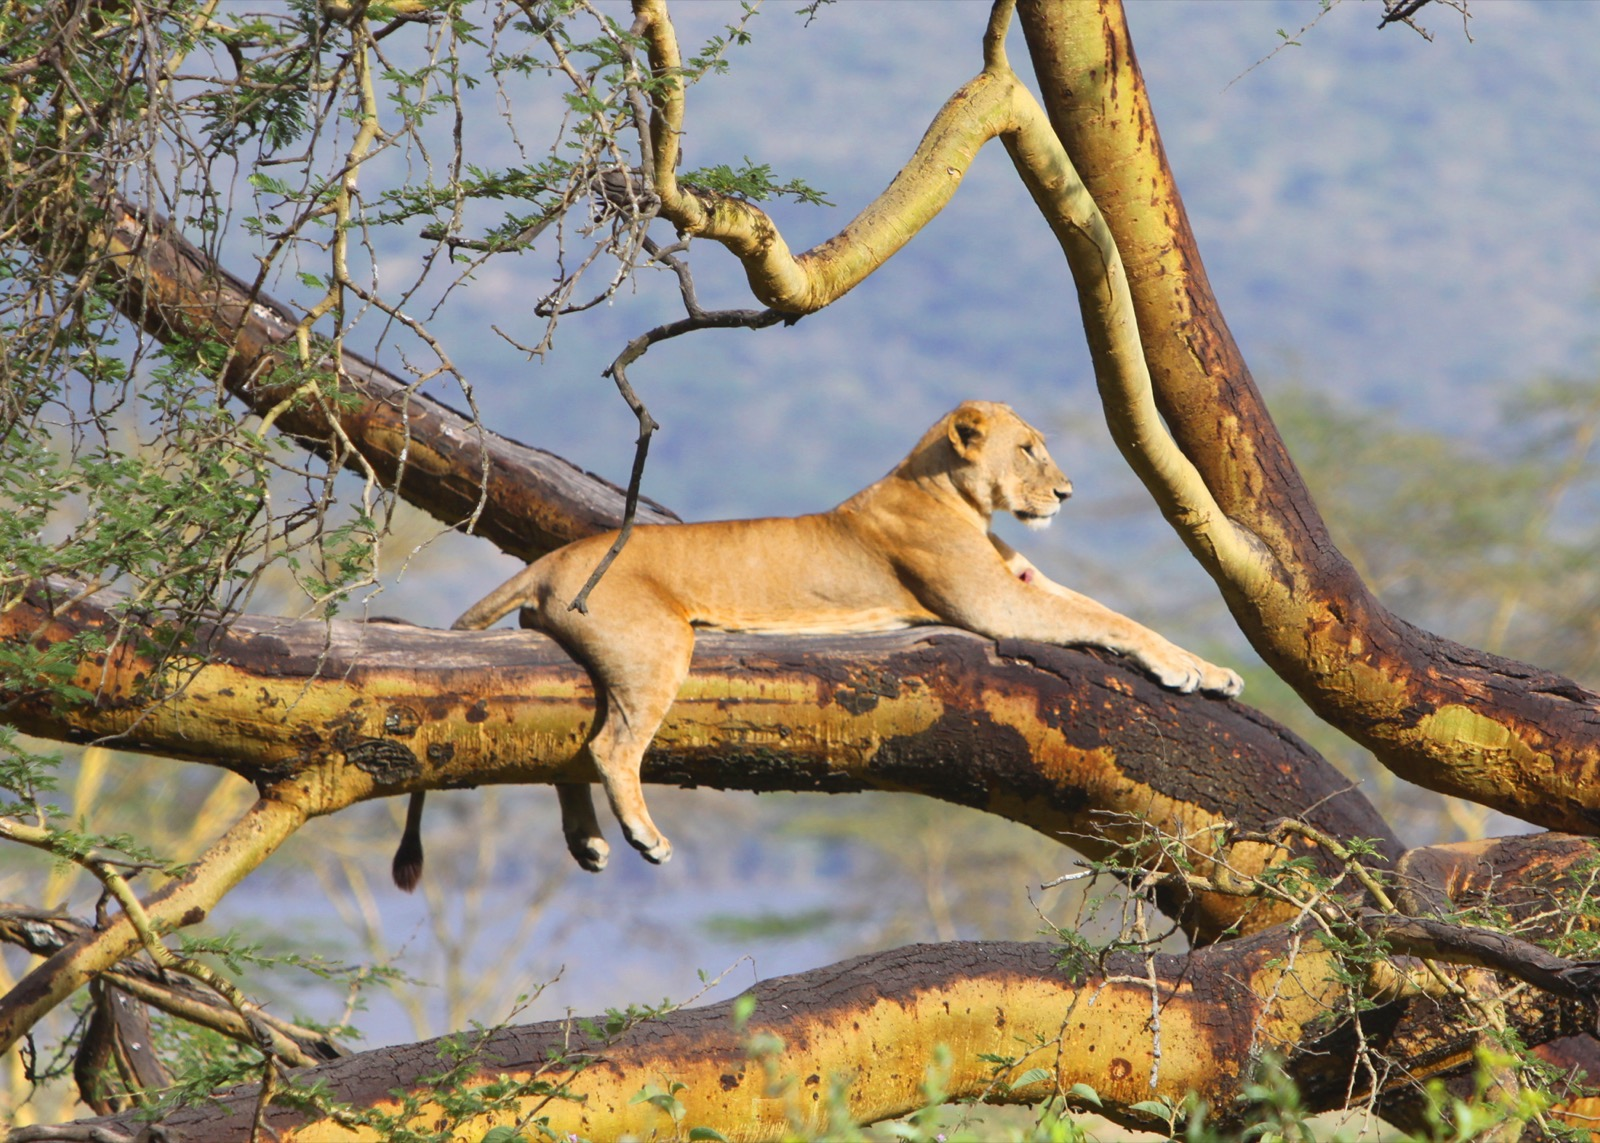 A lioness rests in tree with her feet dangling in Nakuru National Park, western Kenya.